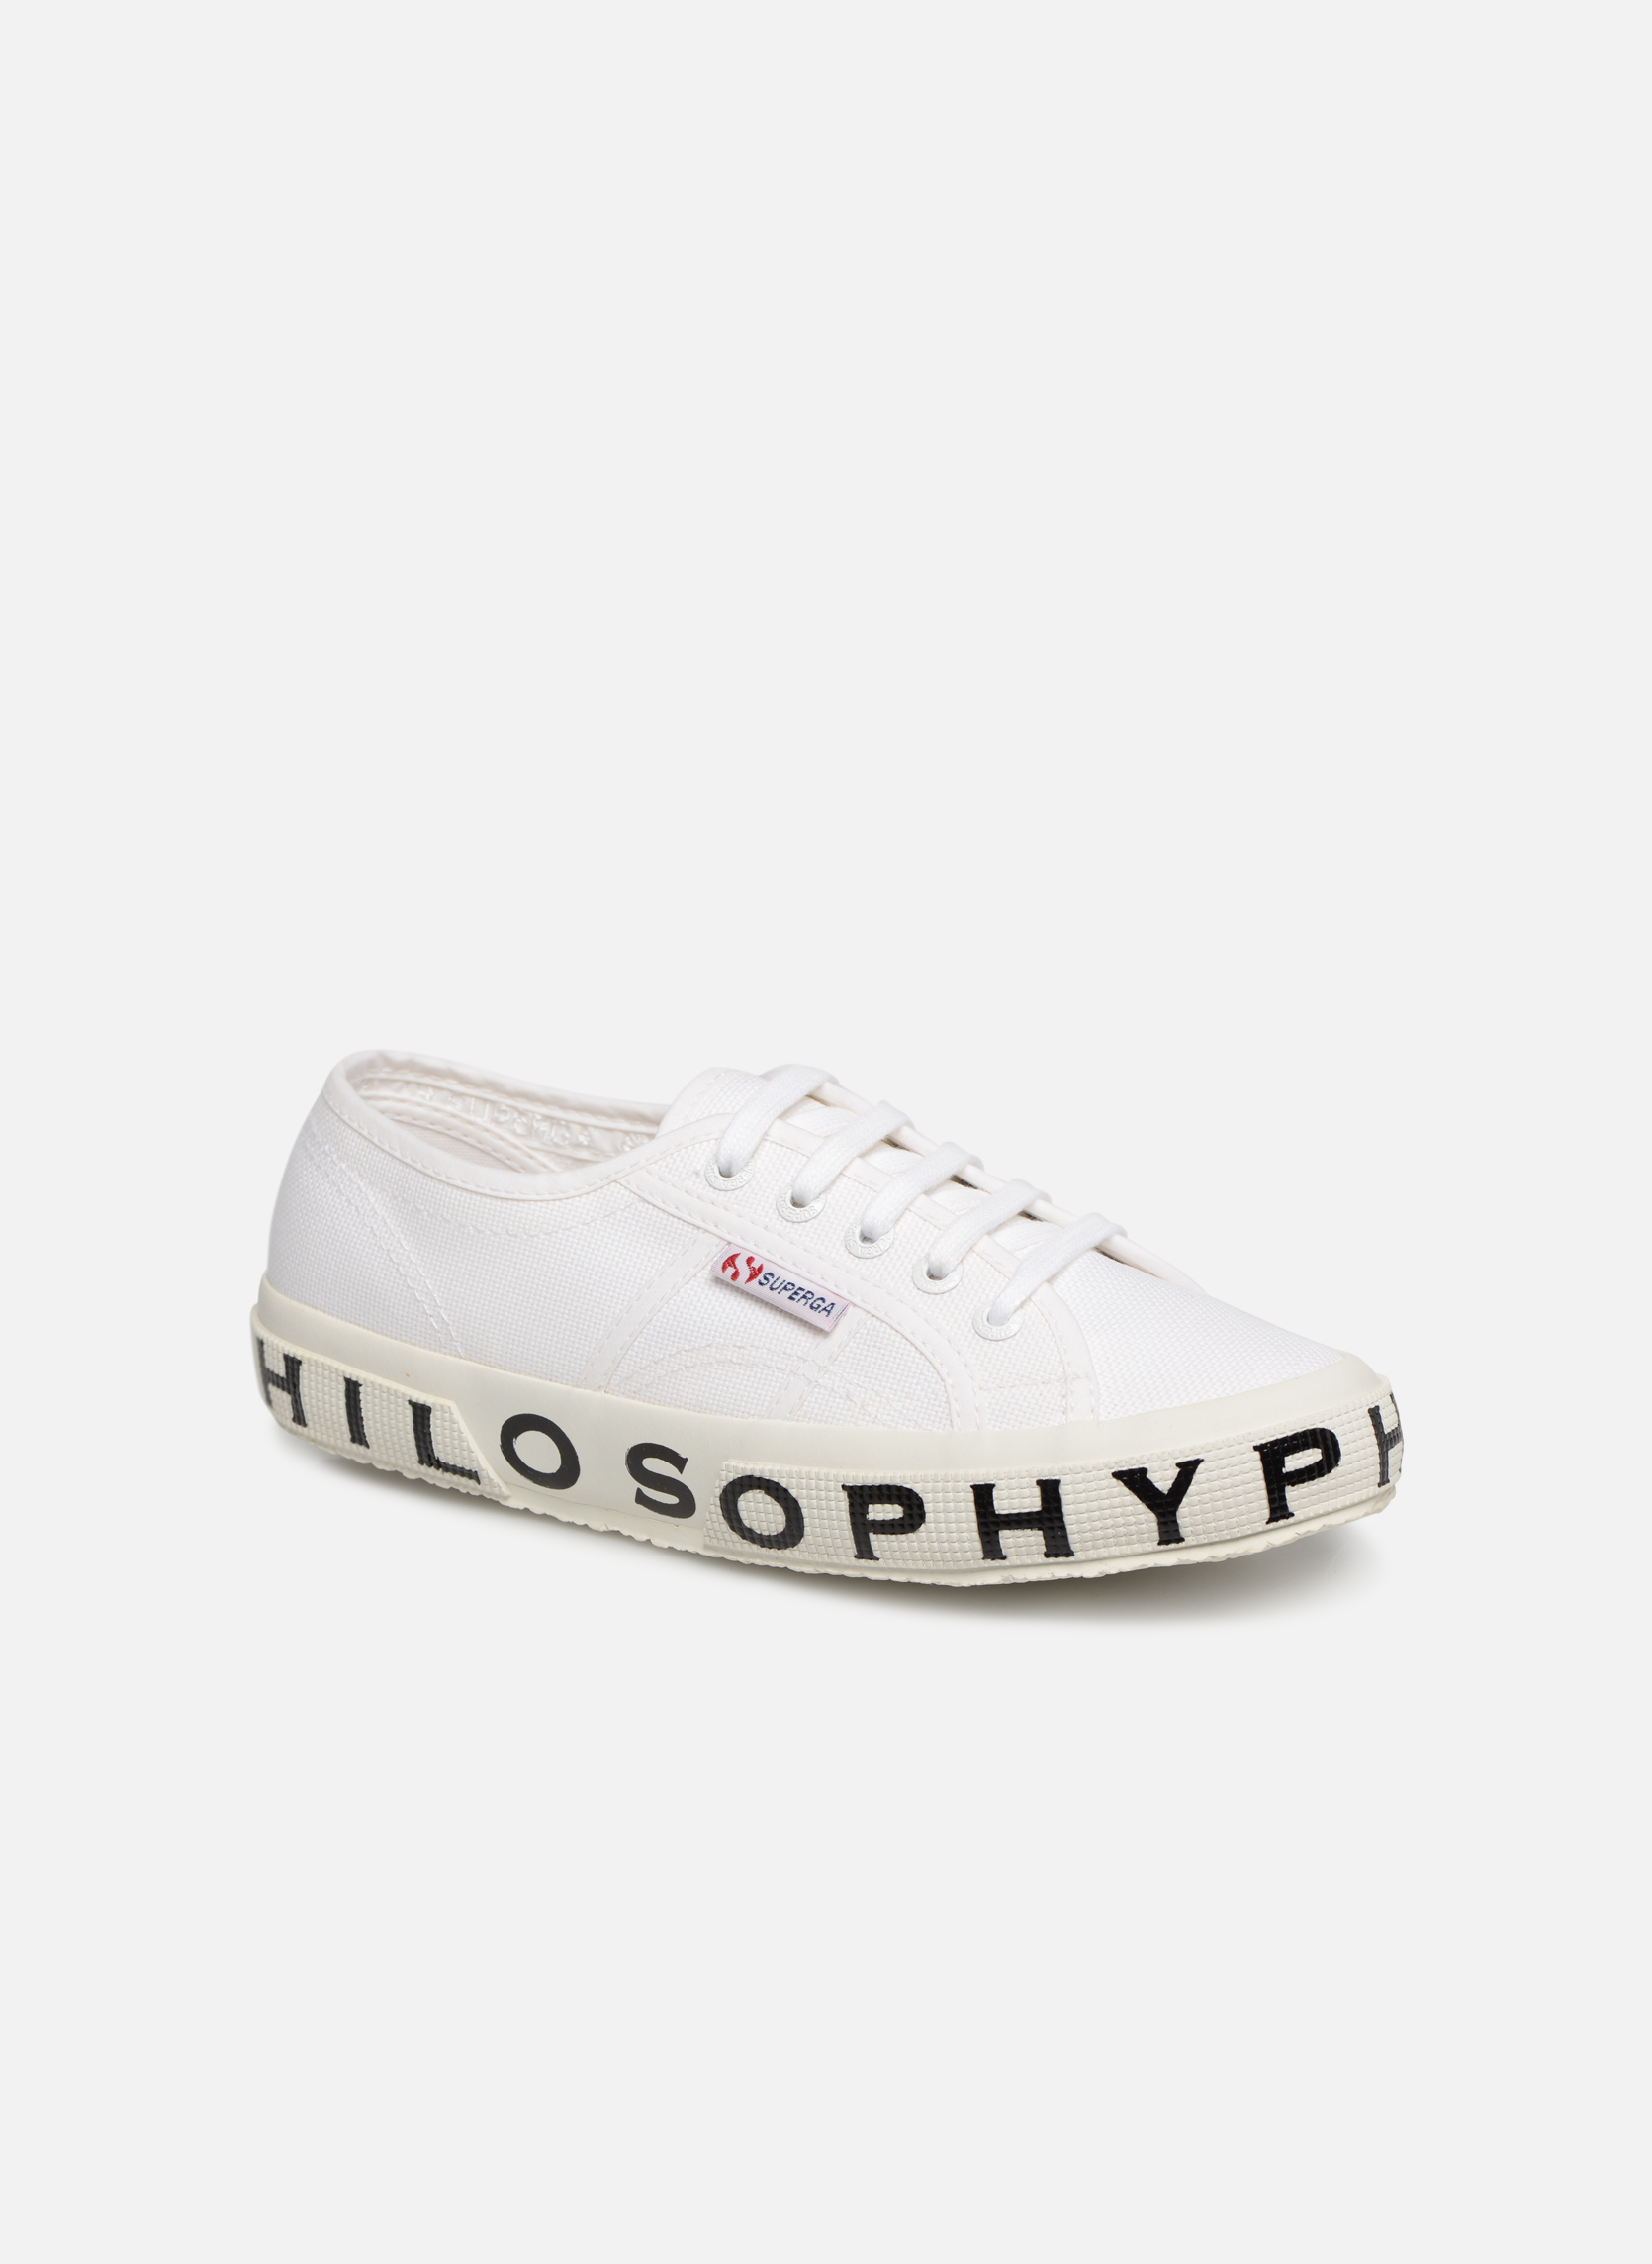 Sneakers Philosophy x Superga Wit